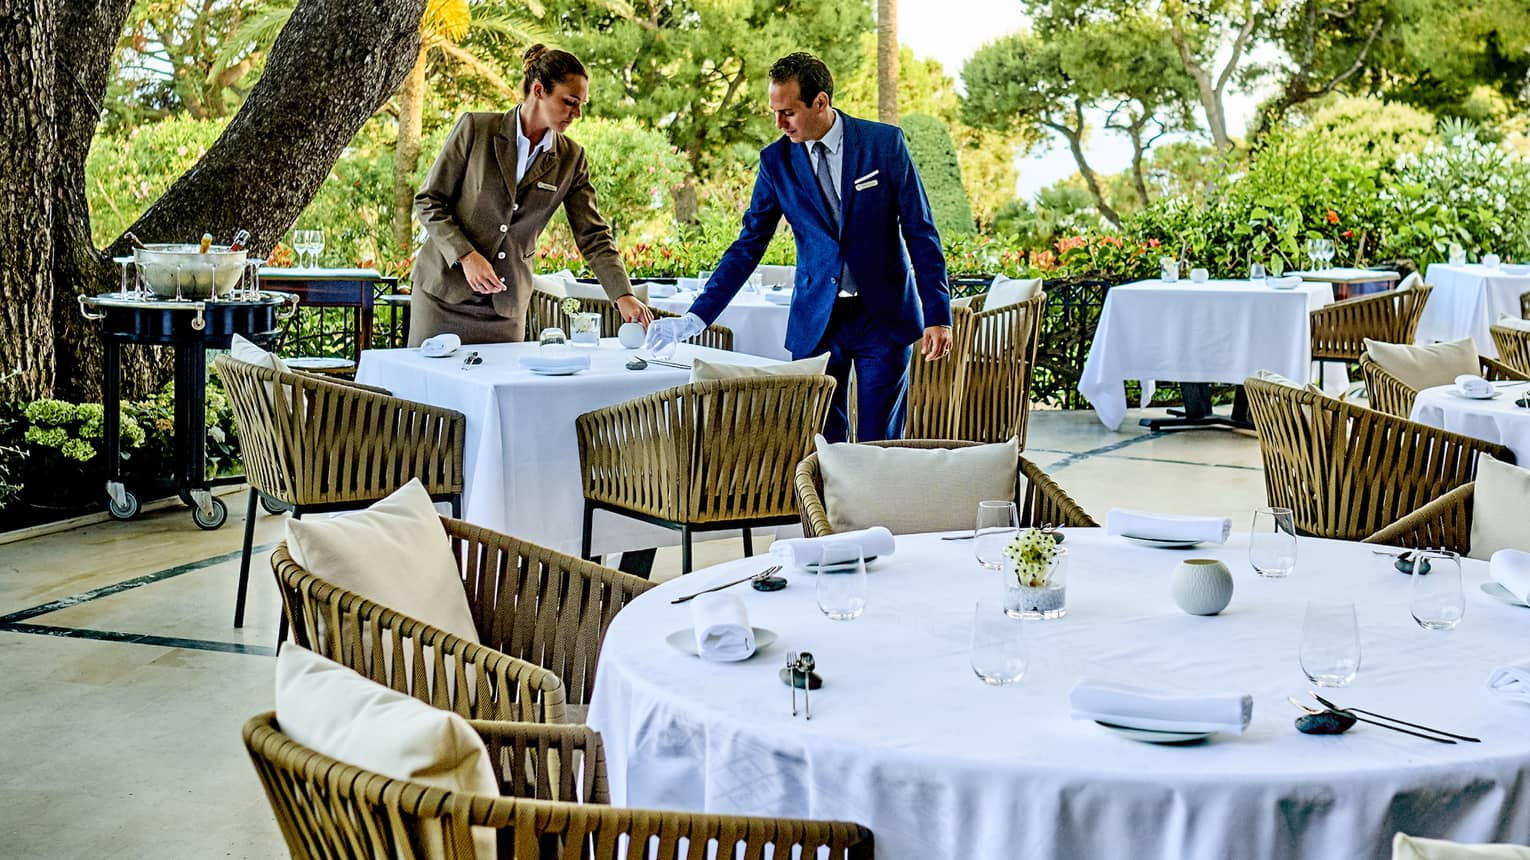 Le Cap terrace with tables covered in white tablecloths and with light-brown chairs